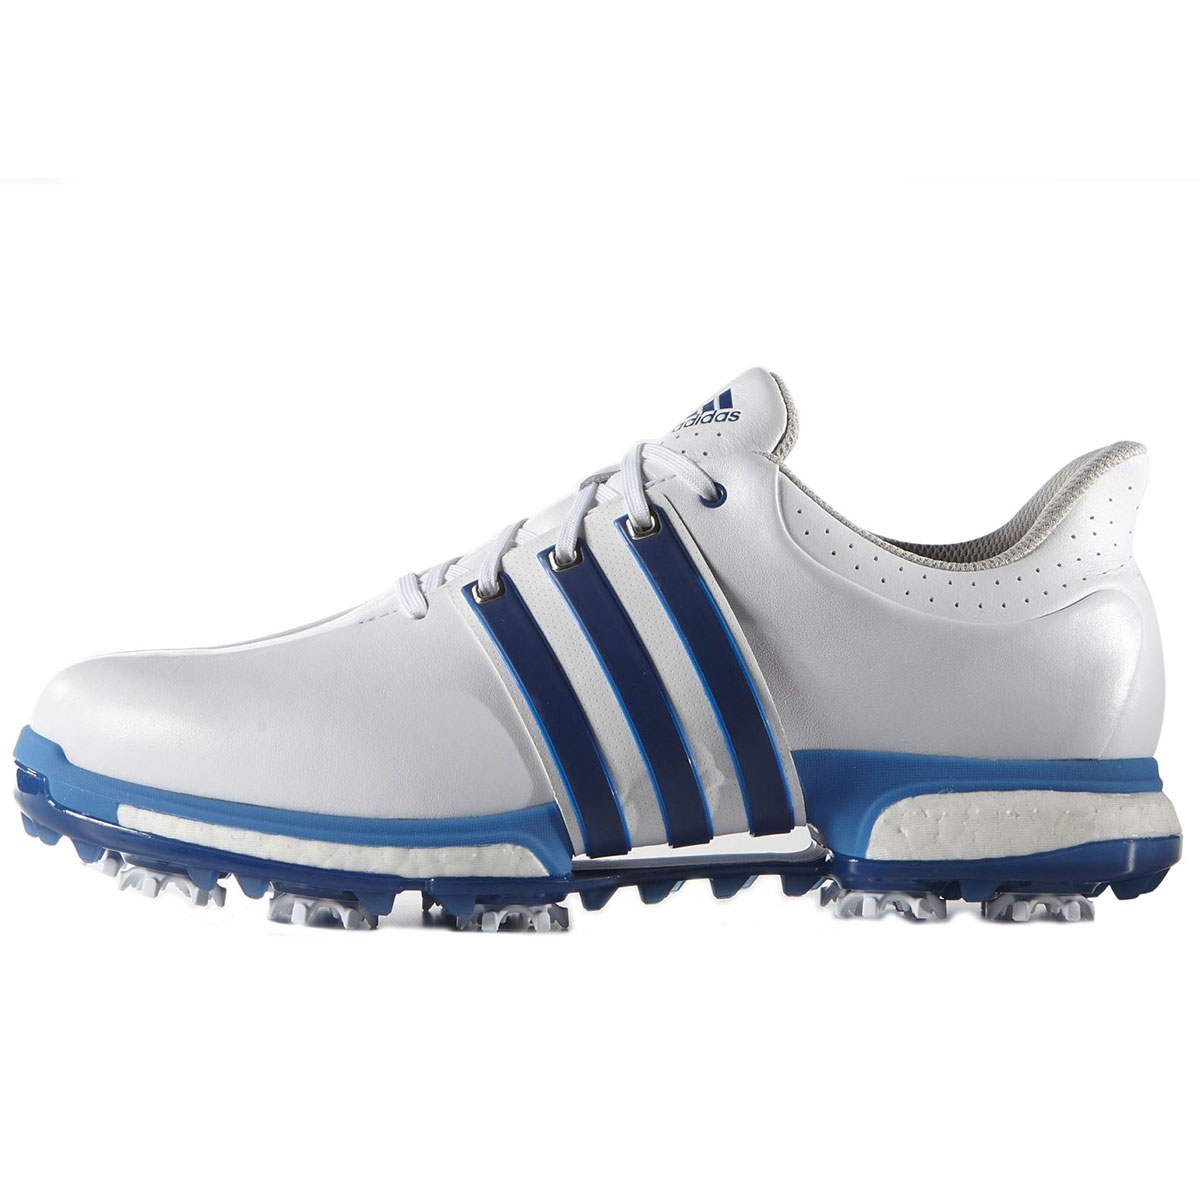 59cec0af8922 adidas Golf Tour 360 Boost Shoes